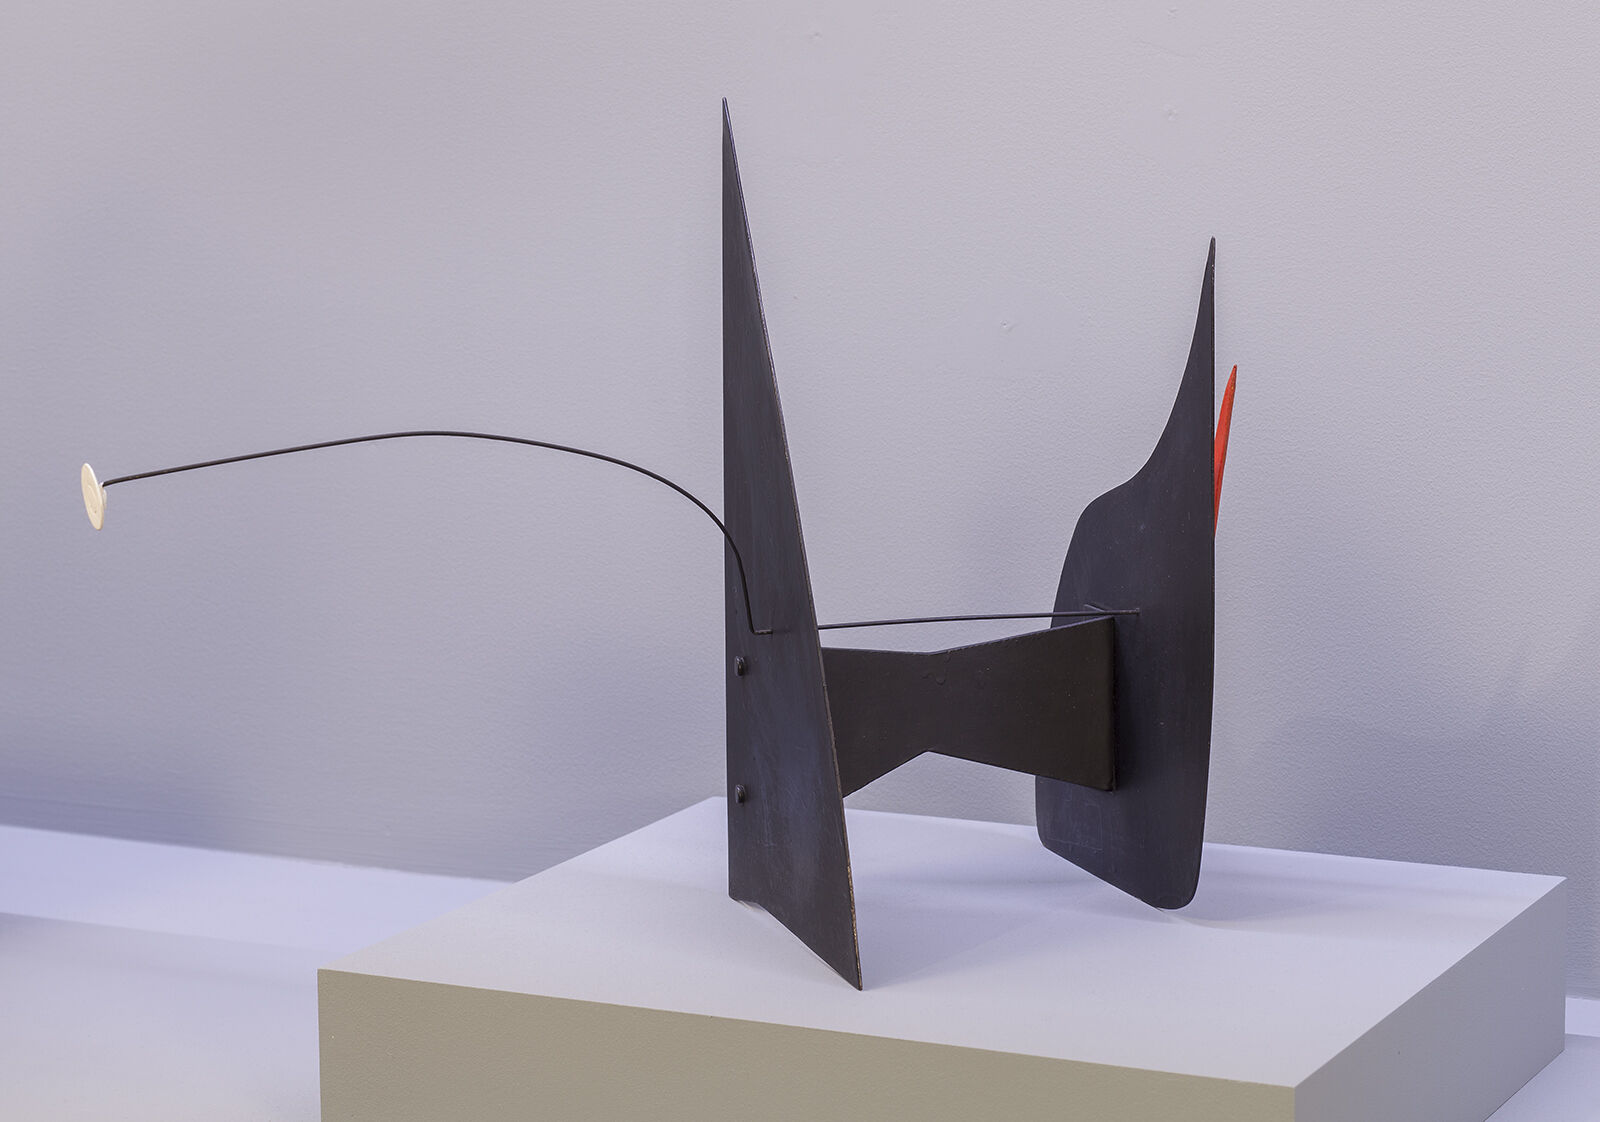 A sculpture in a gallery.